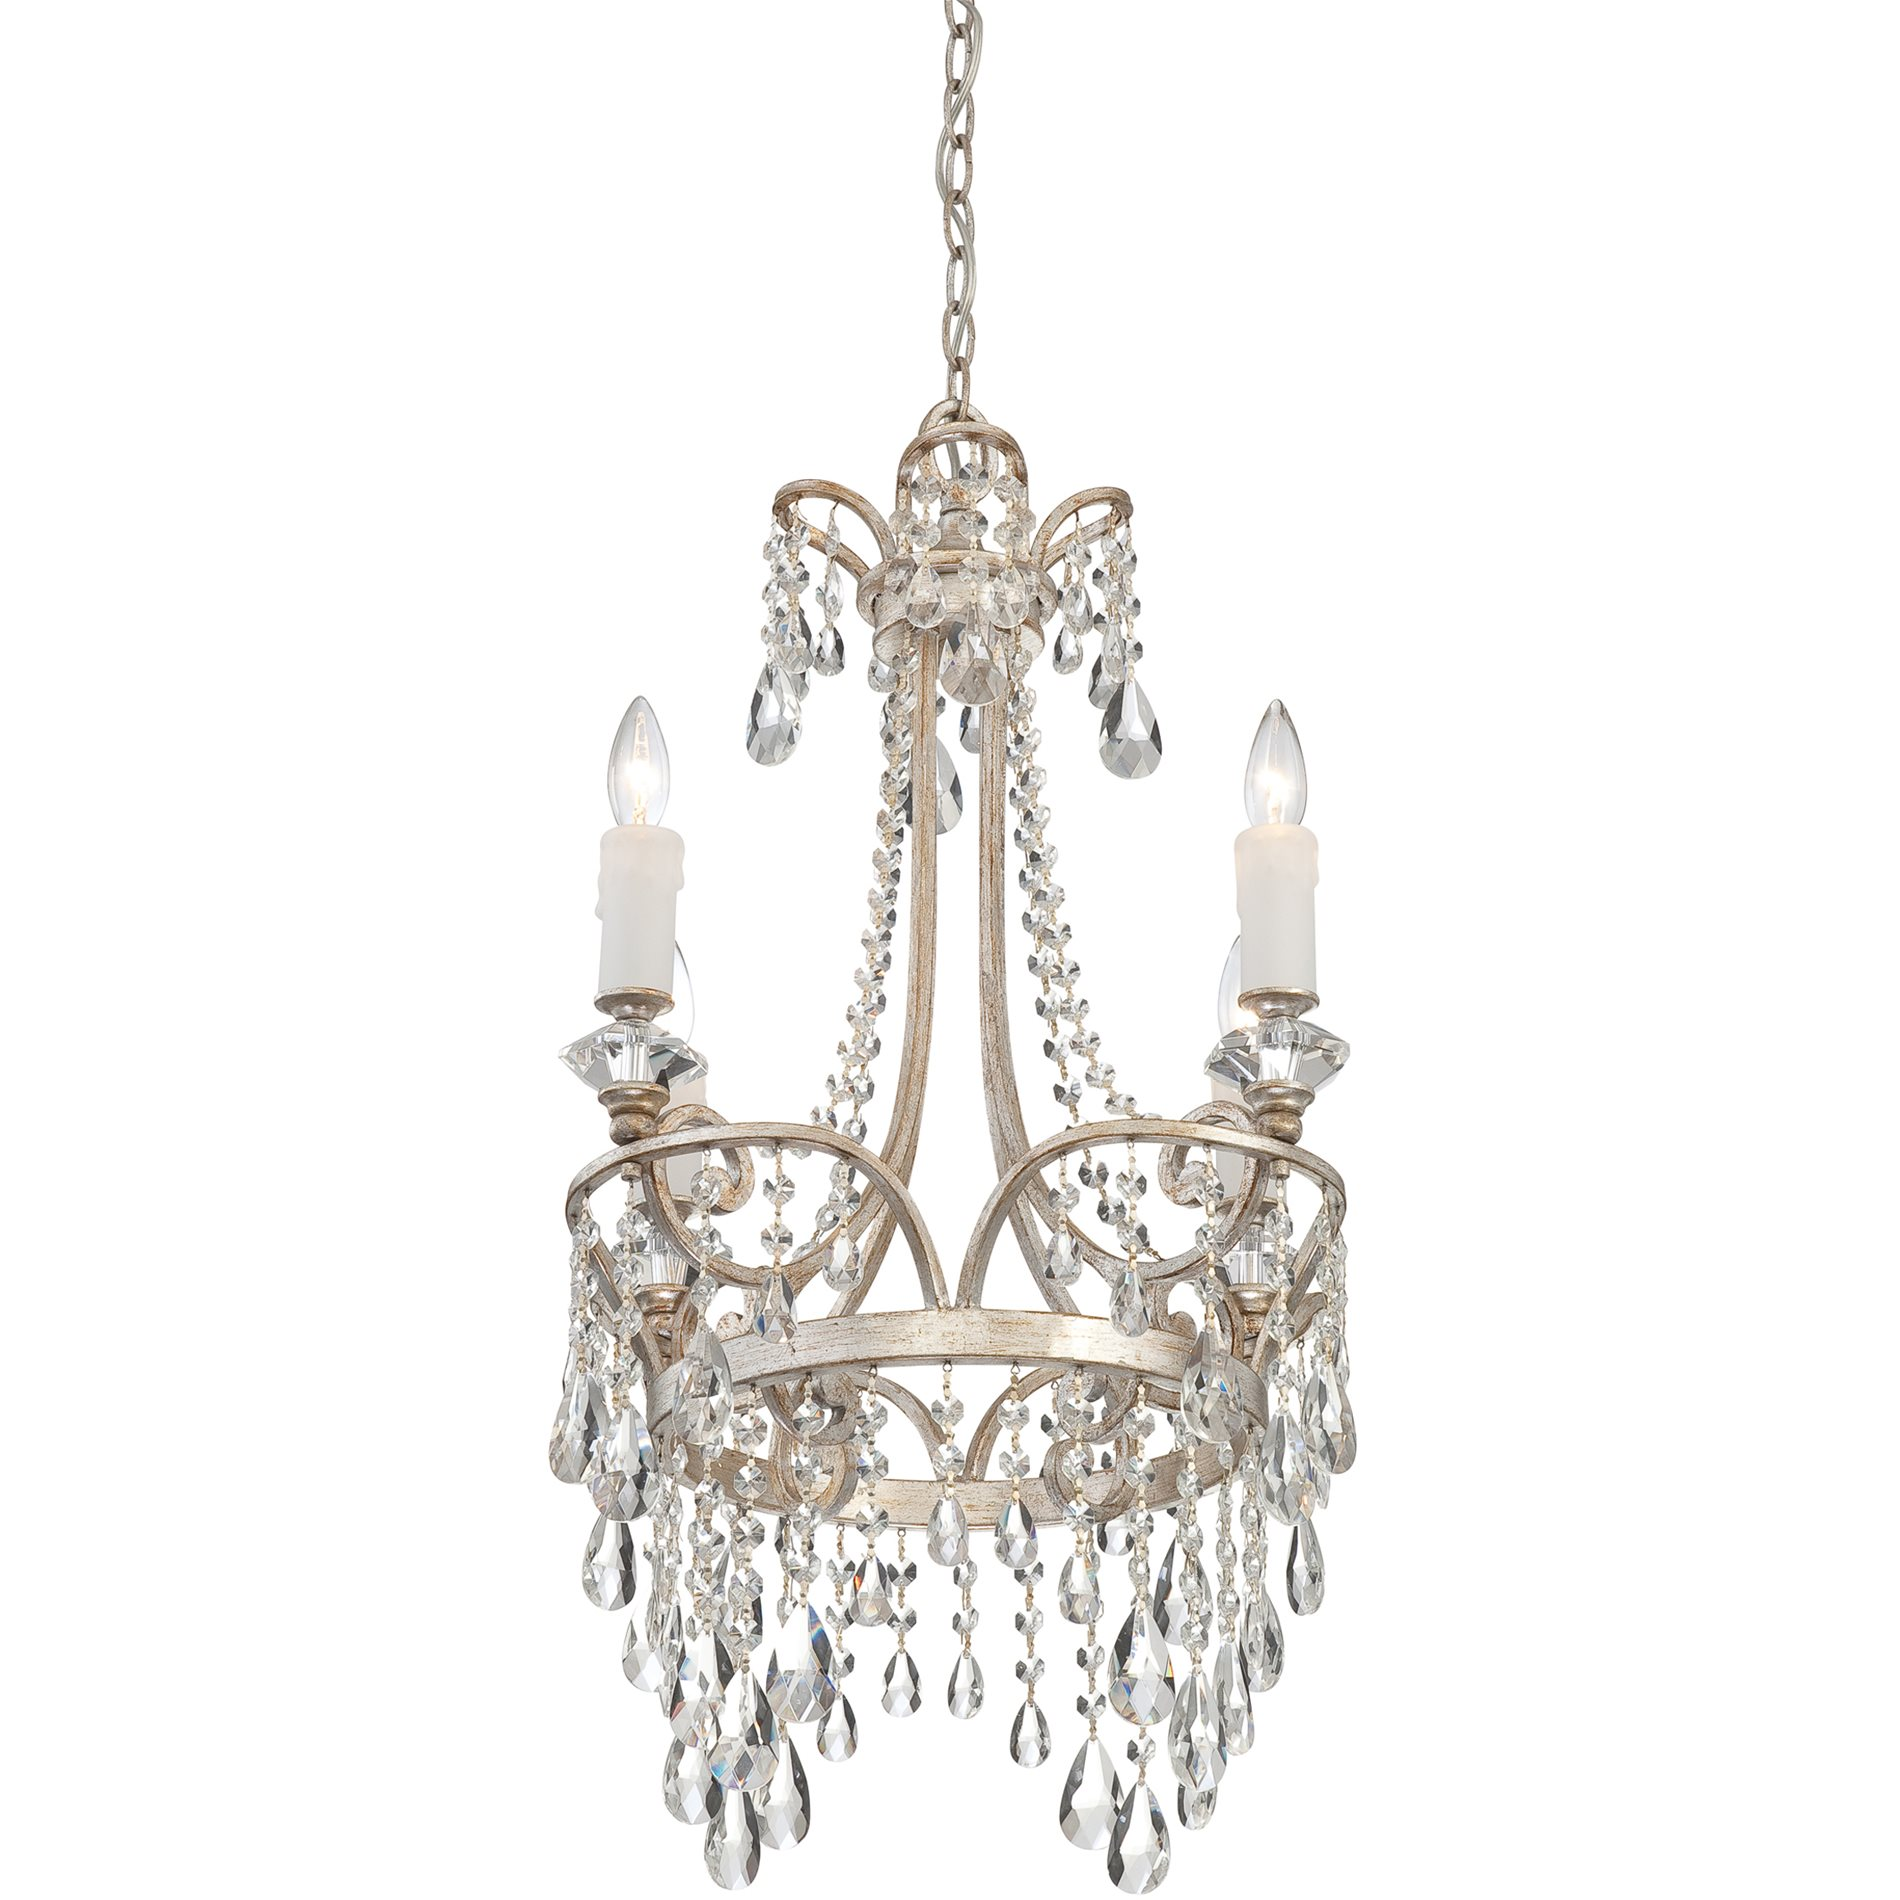 Quoizel tca5004vp tricia traditional crystal chandelier qz tca5004vp - Traditional crystal chandeliers ...